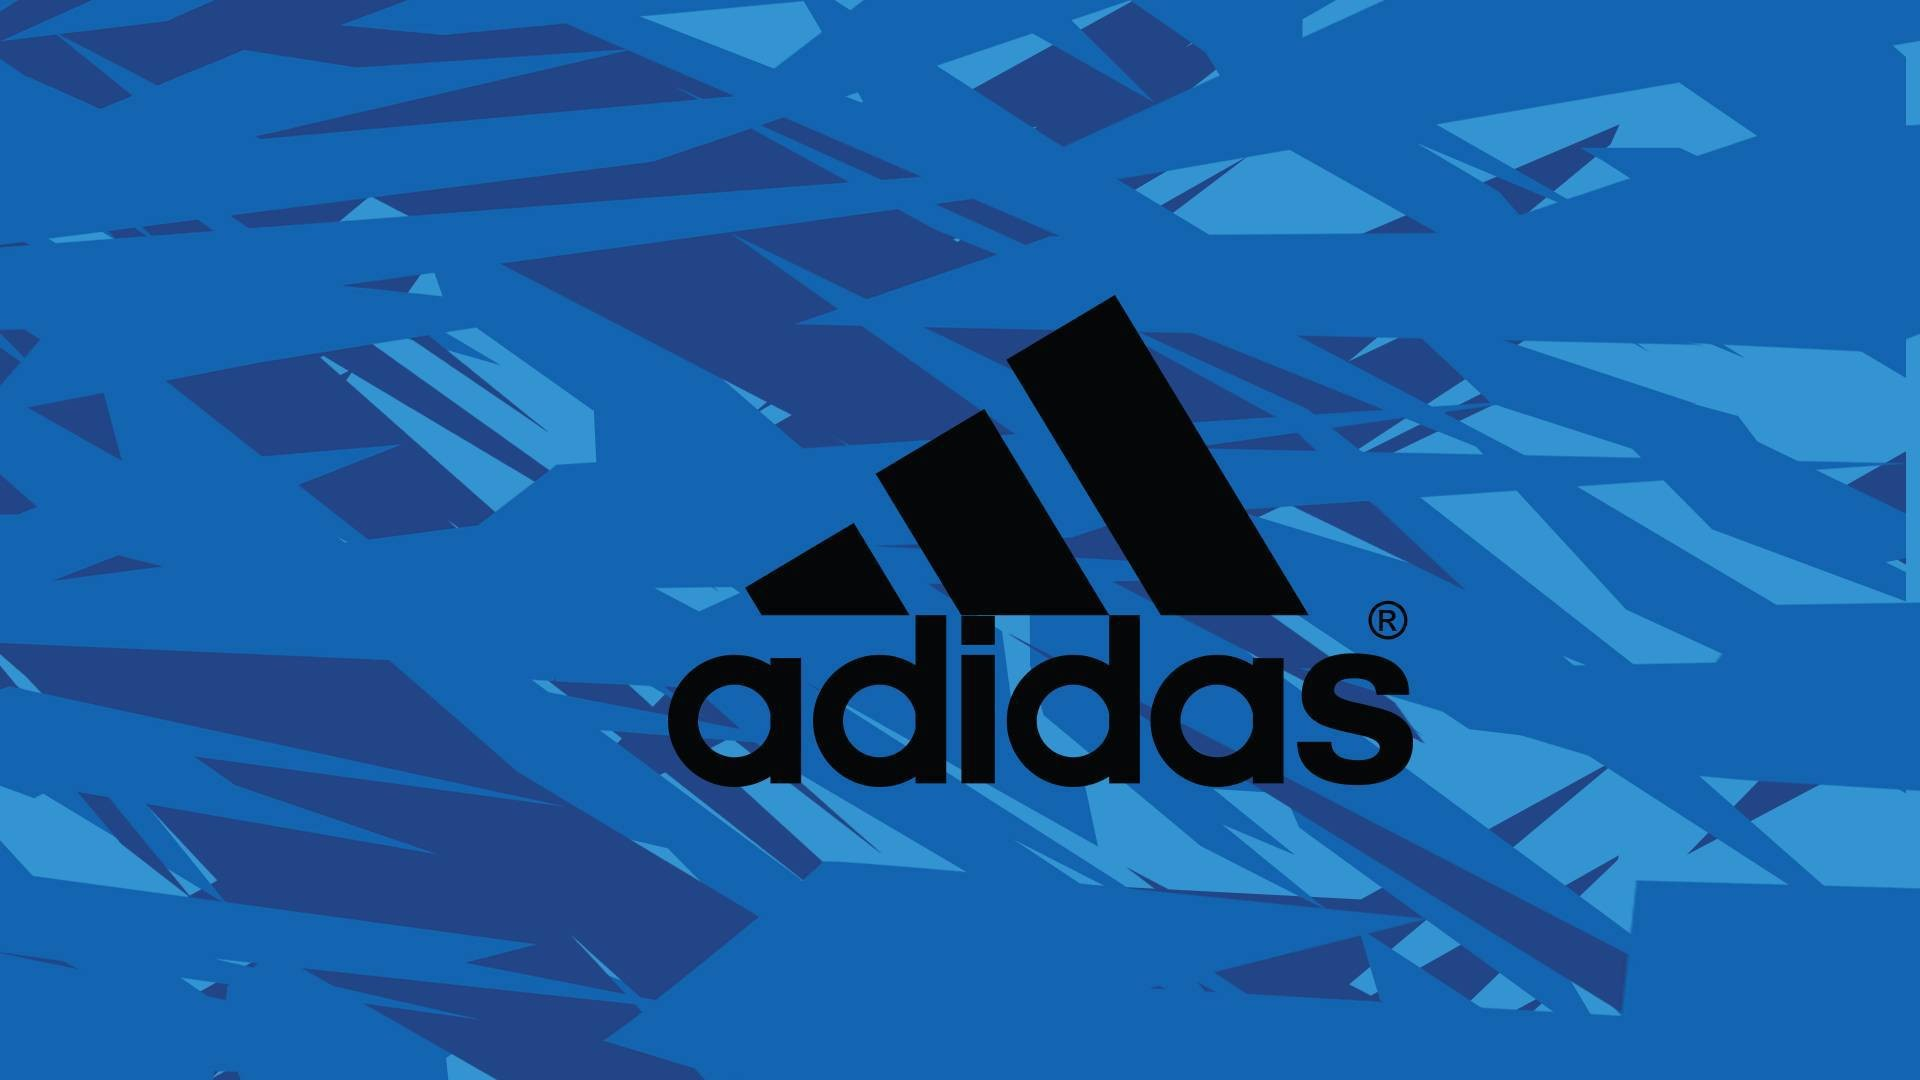 Adidas wallpaper download free amazing high resolution - Adidas wallpaper hd ...